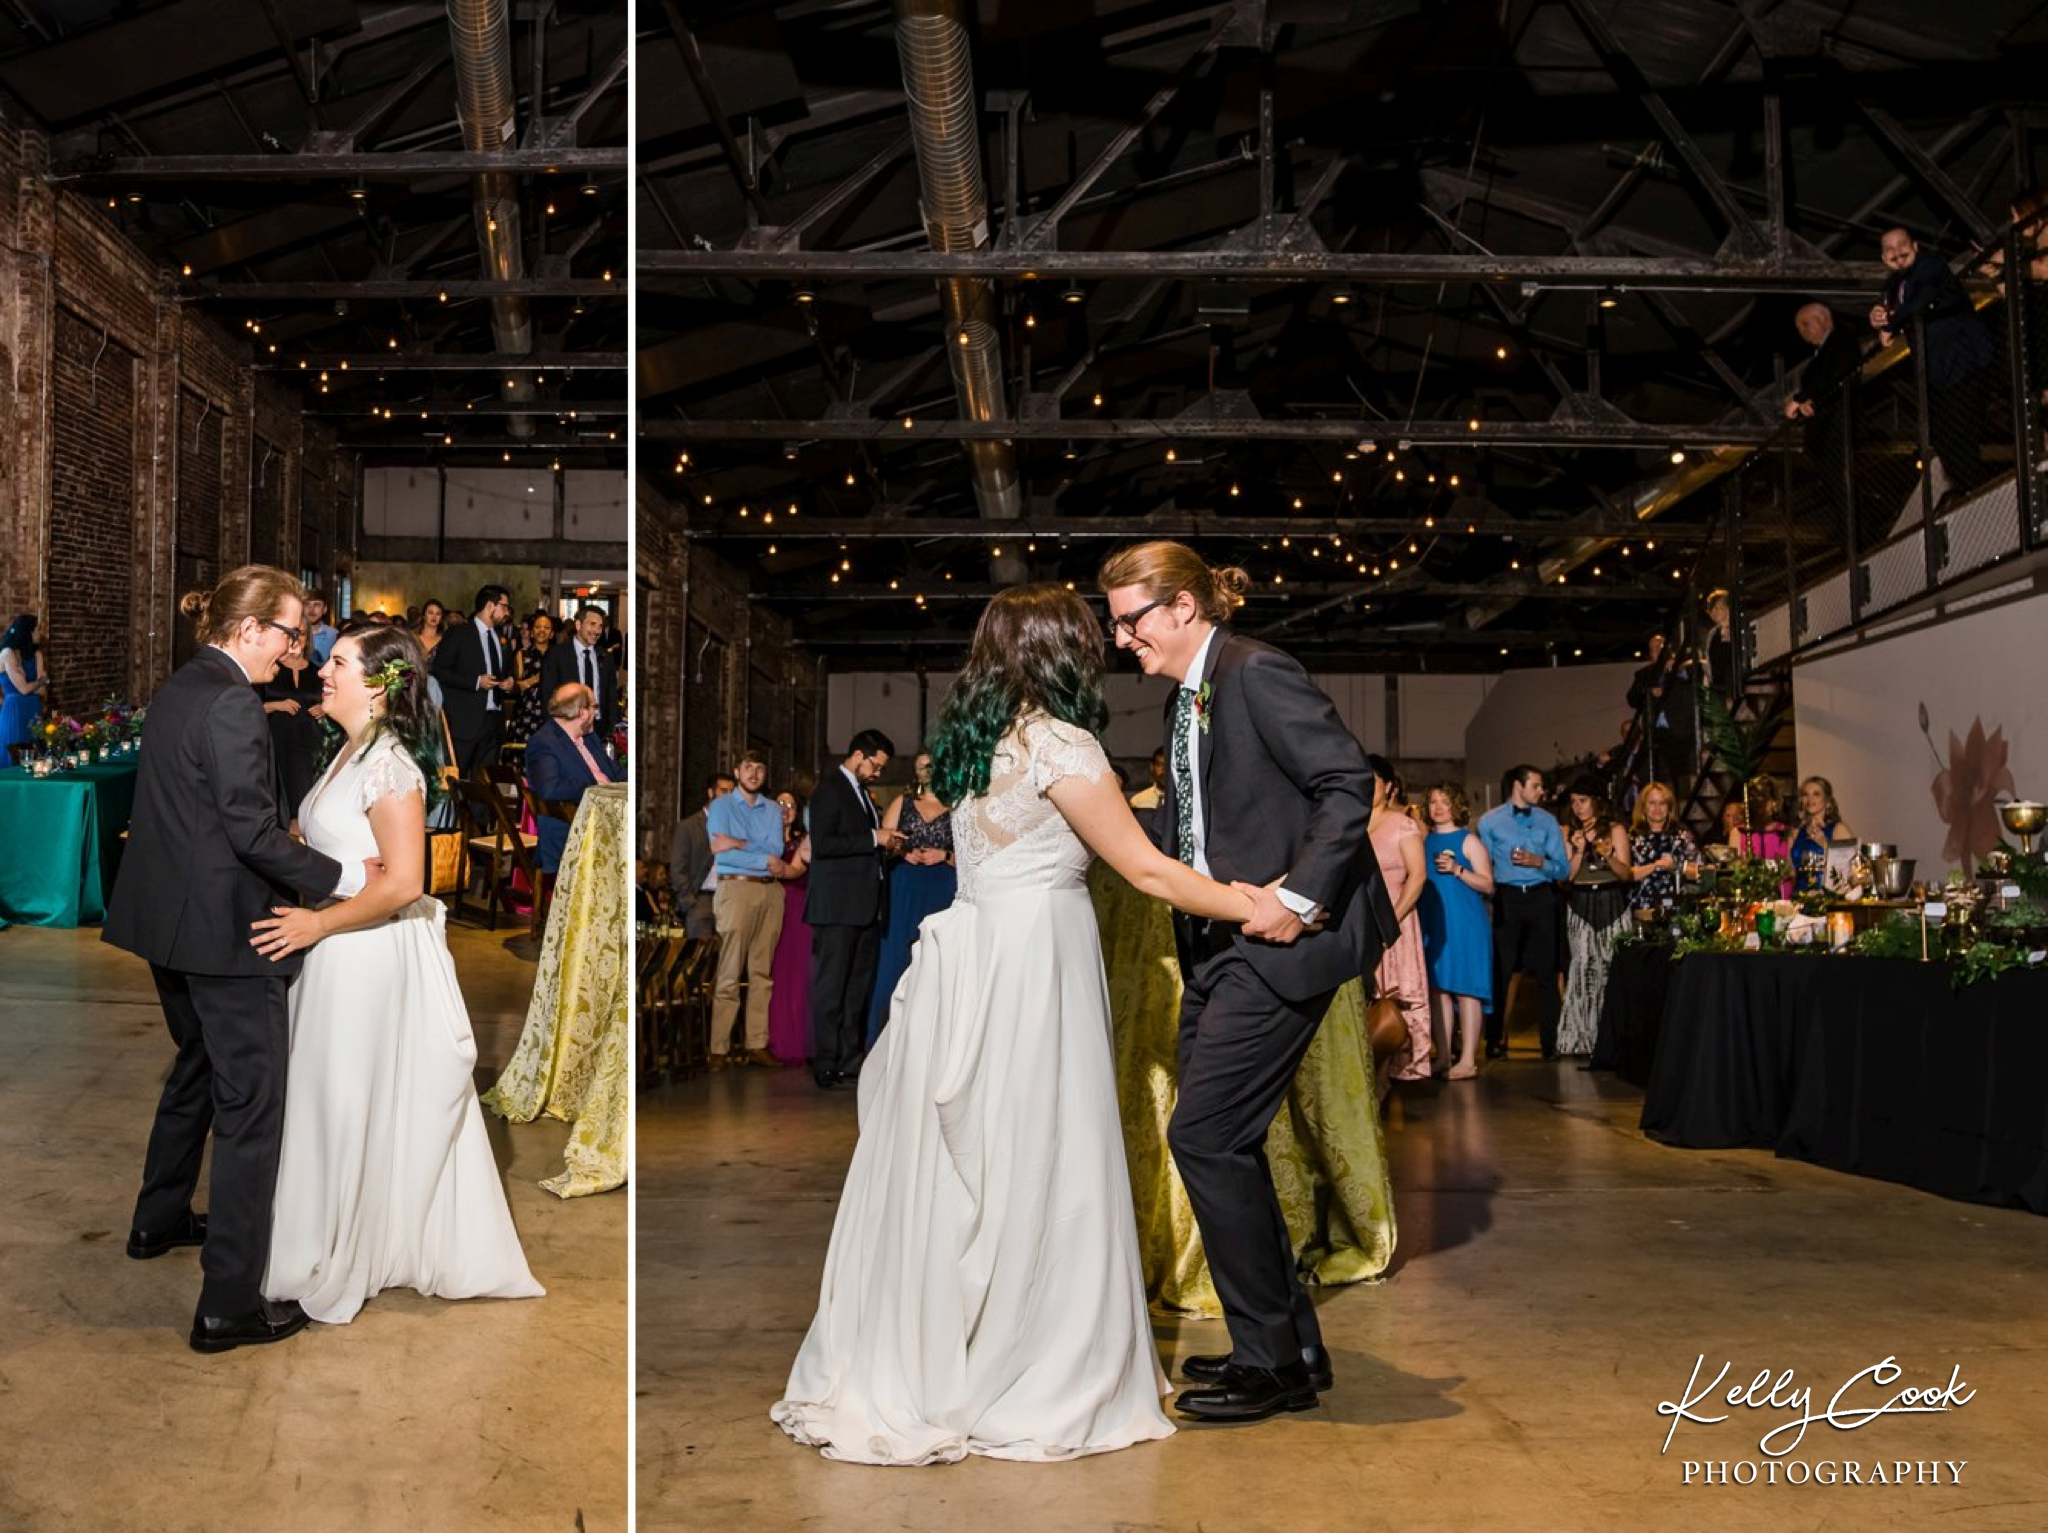 Couple's first dance at the Wild Carrot wedding in St. Louis